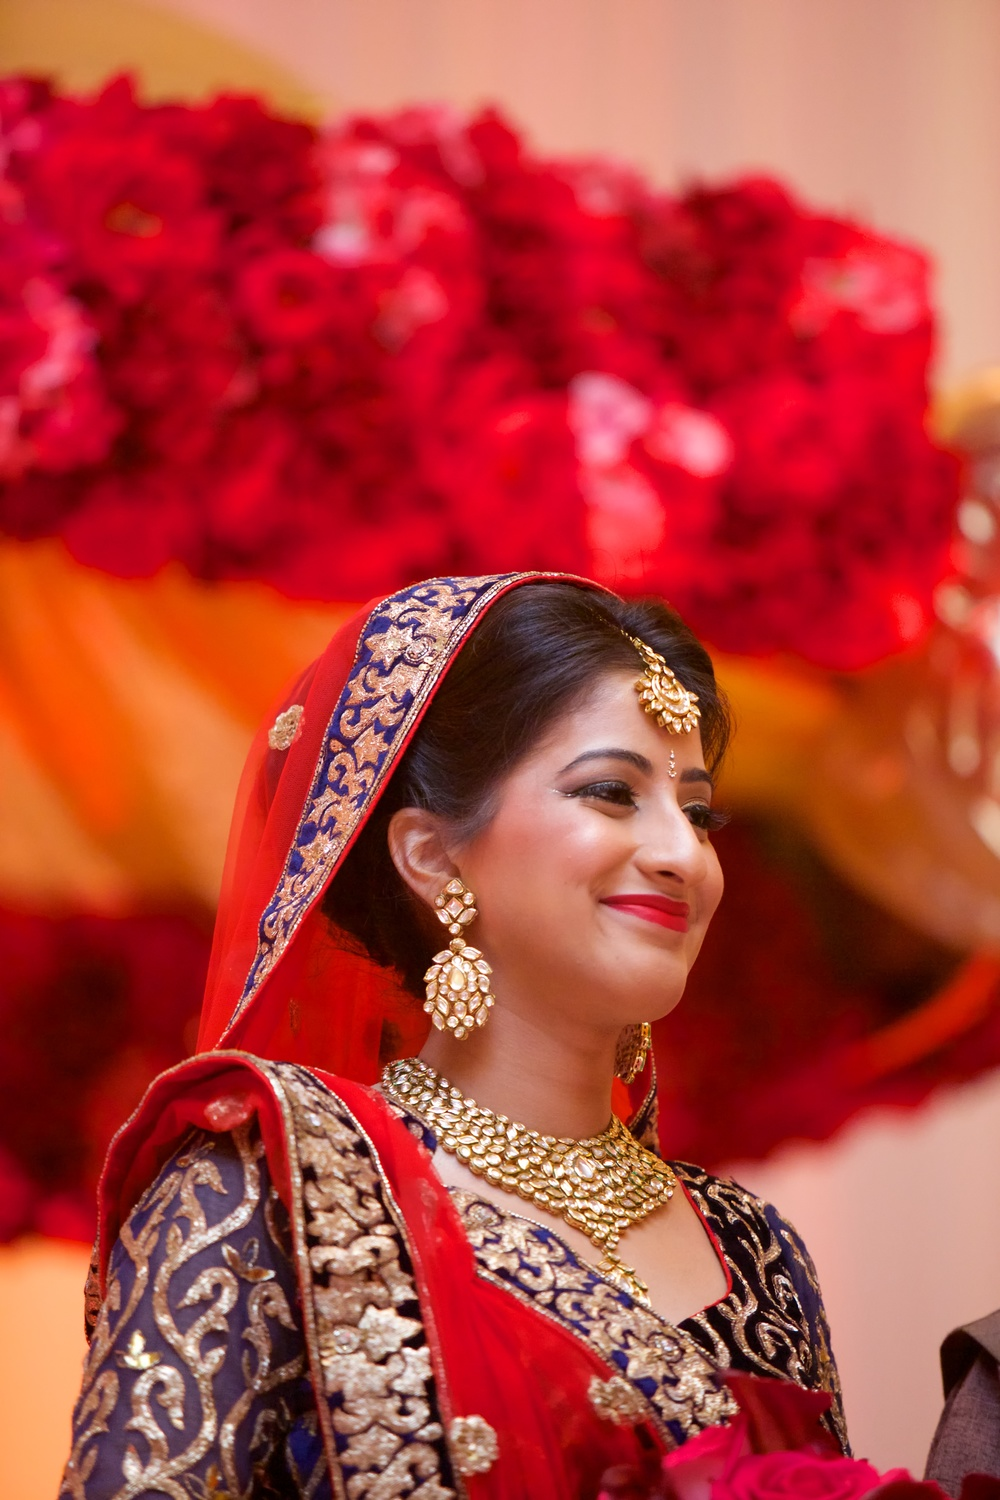 Le Cape Weddings - Indian Wedding - Day 4 - Megan and Karthik Ceremony  36.jpg